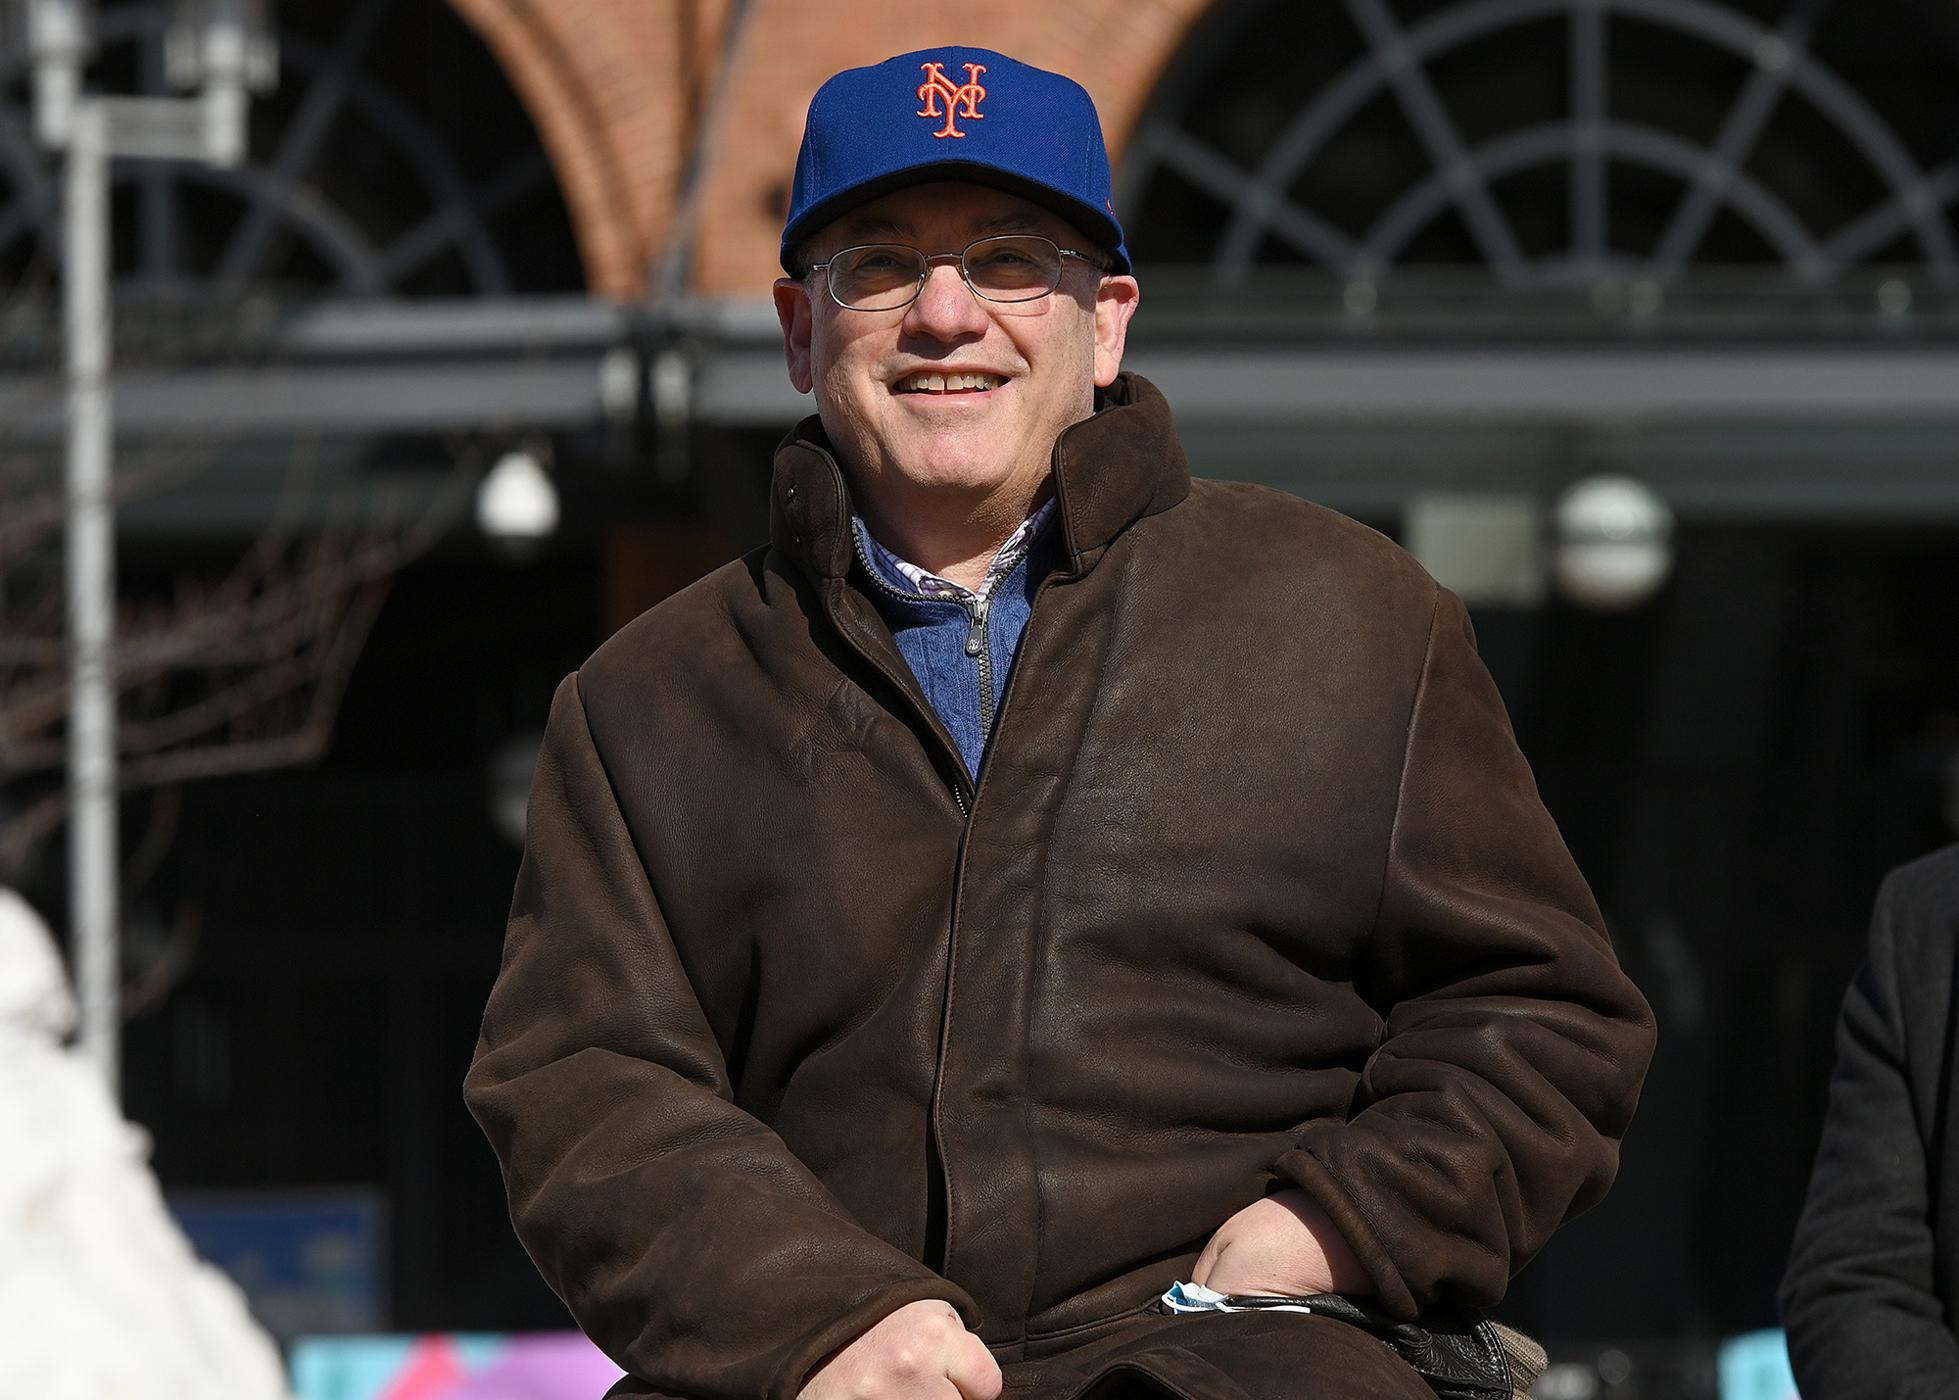 NY: Mets Owner Steve Cohen Attends Opening Of Citi Field As COVID-19 Vaccine Hub